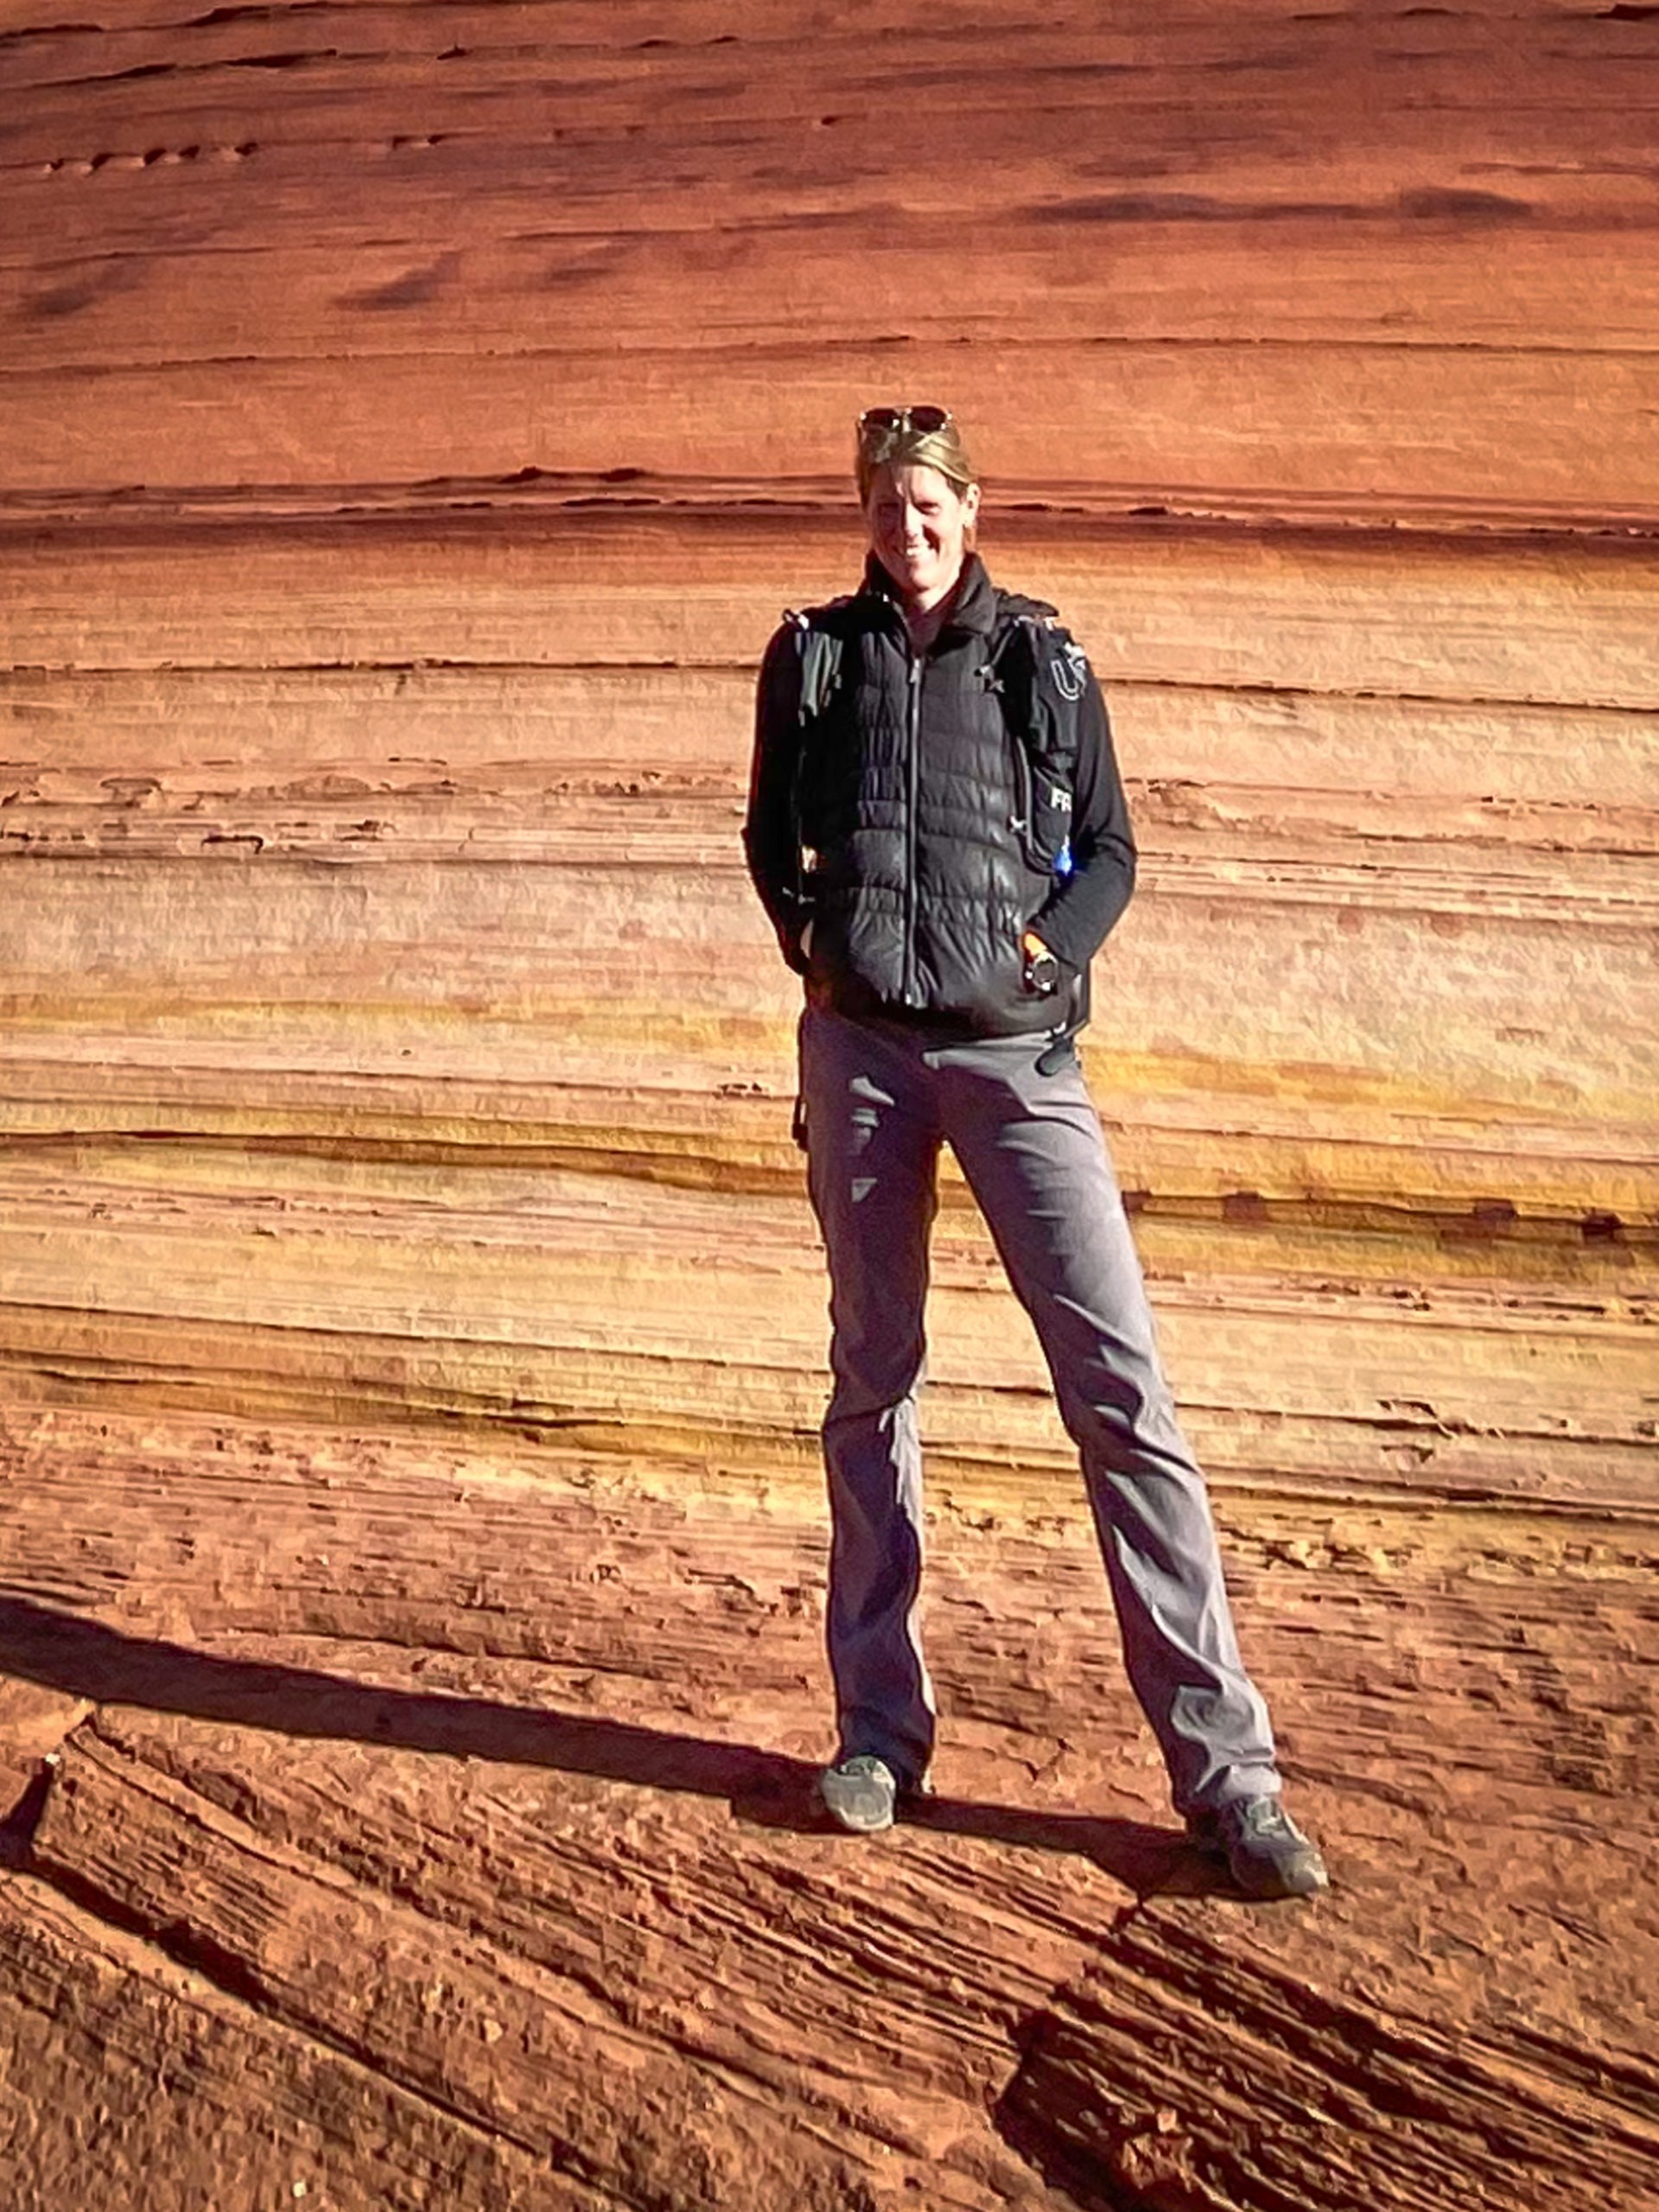 William James, Kanab Tour Guide/Manager